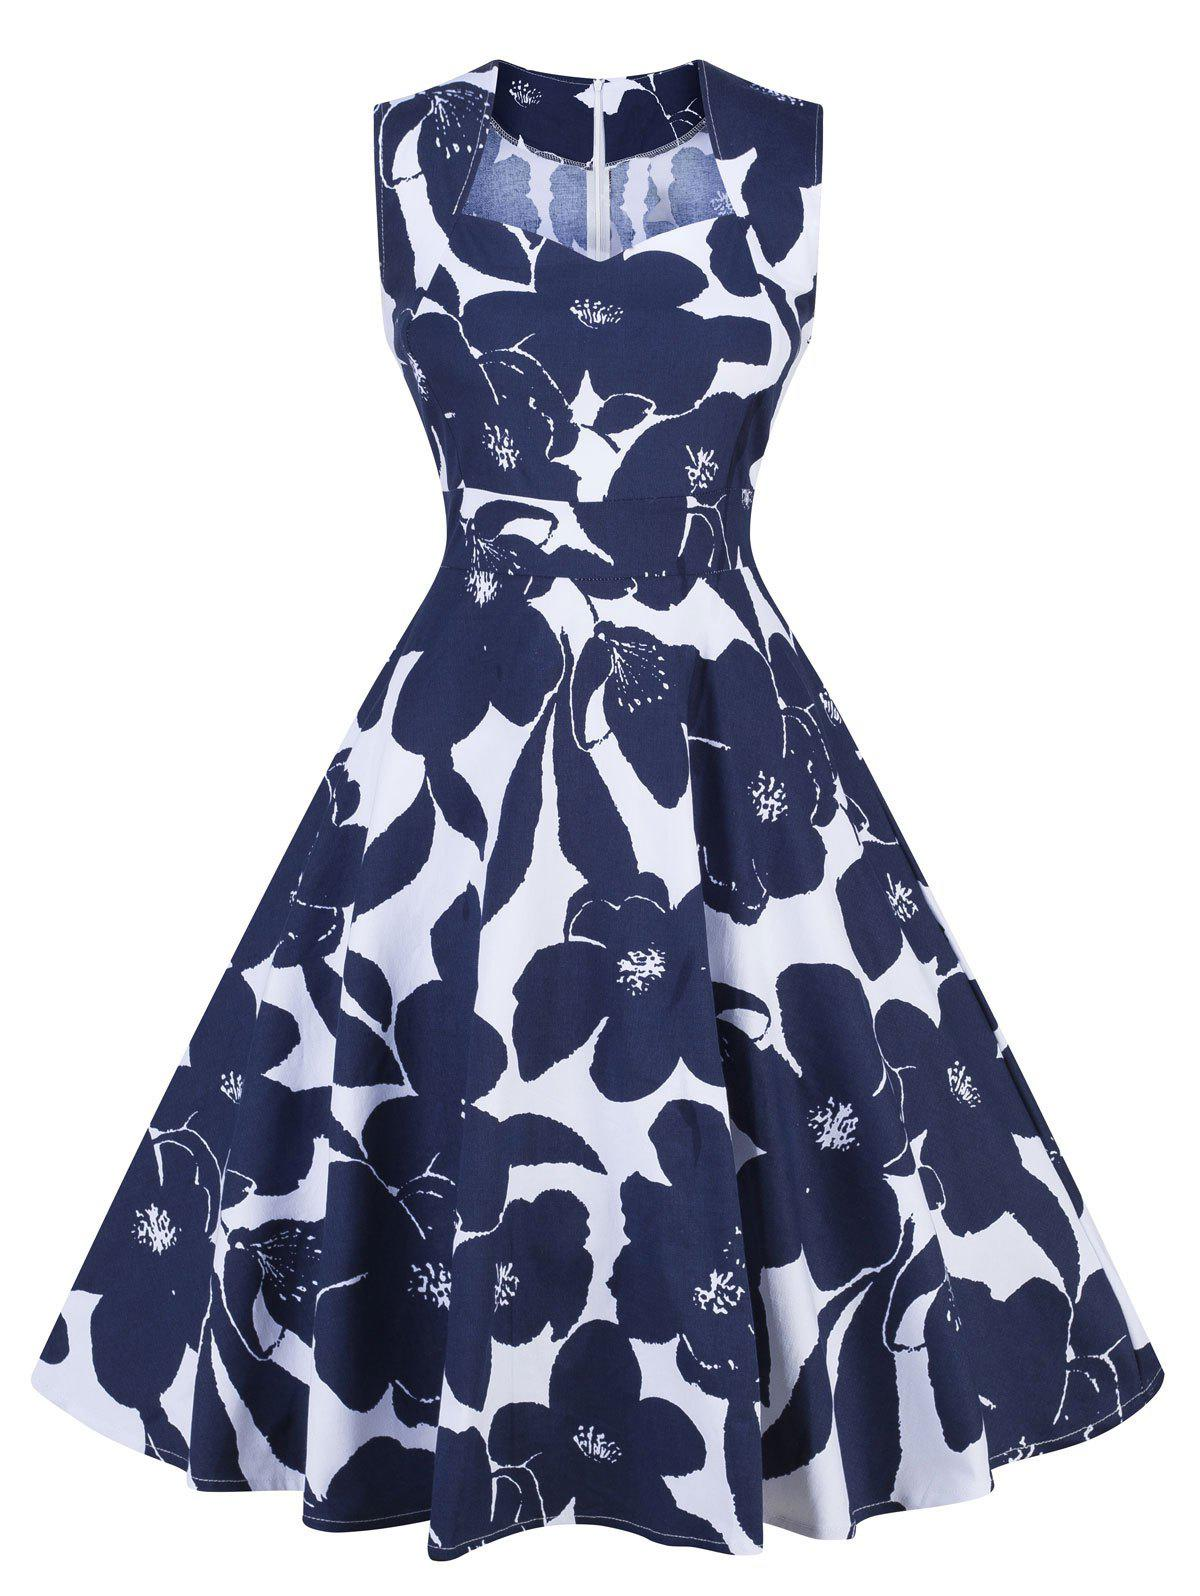 Vintage Floral Print Pin Up Swing DressWOMEN<br><br>Size: XL; Color: BLUE AND WHITE; Style: Vintage; Material: Cotton; Silhouette: A-Line; Dresses Length: Knee-Length; Neckline: Sweetheart Neck; Sleeve Length: Sleeveless; Pattern Type: Floral; With Belt: No; Season: Fall,Spring; Weight: 0.3500kg; Package Contents: 1 x Dress;